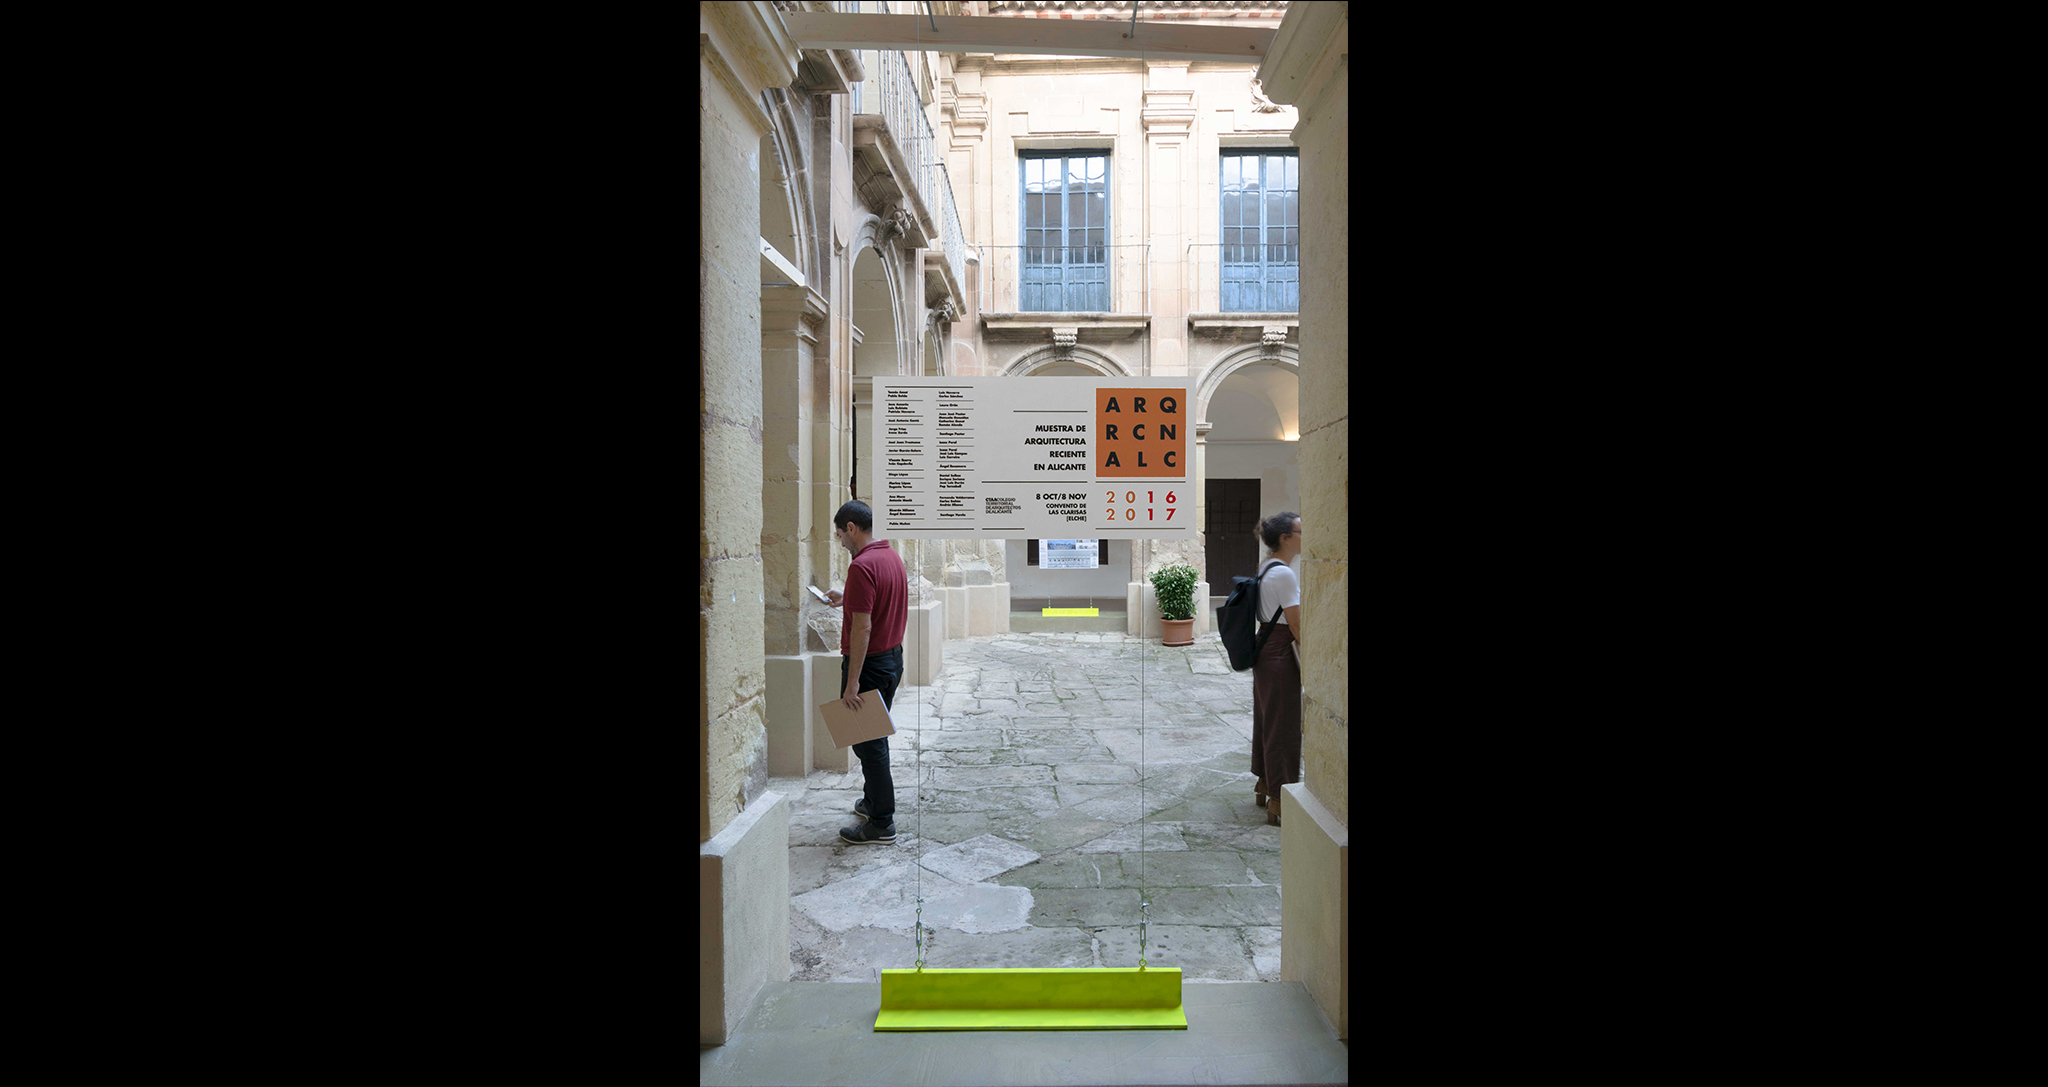 TEMPORARY EXHIBITION ARCHITECTURE WEEK 2019 FOR THE OFFICIAL ASSOCIATION OF ARCHITECTS OF ALICANTE IN THE CULTURAL CENTRE LAS CLARISAS EXHIBITION DESIGN ROCAMORA DESIGN AND ARCHITECTURE ELCHE ALICANTE